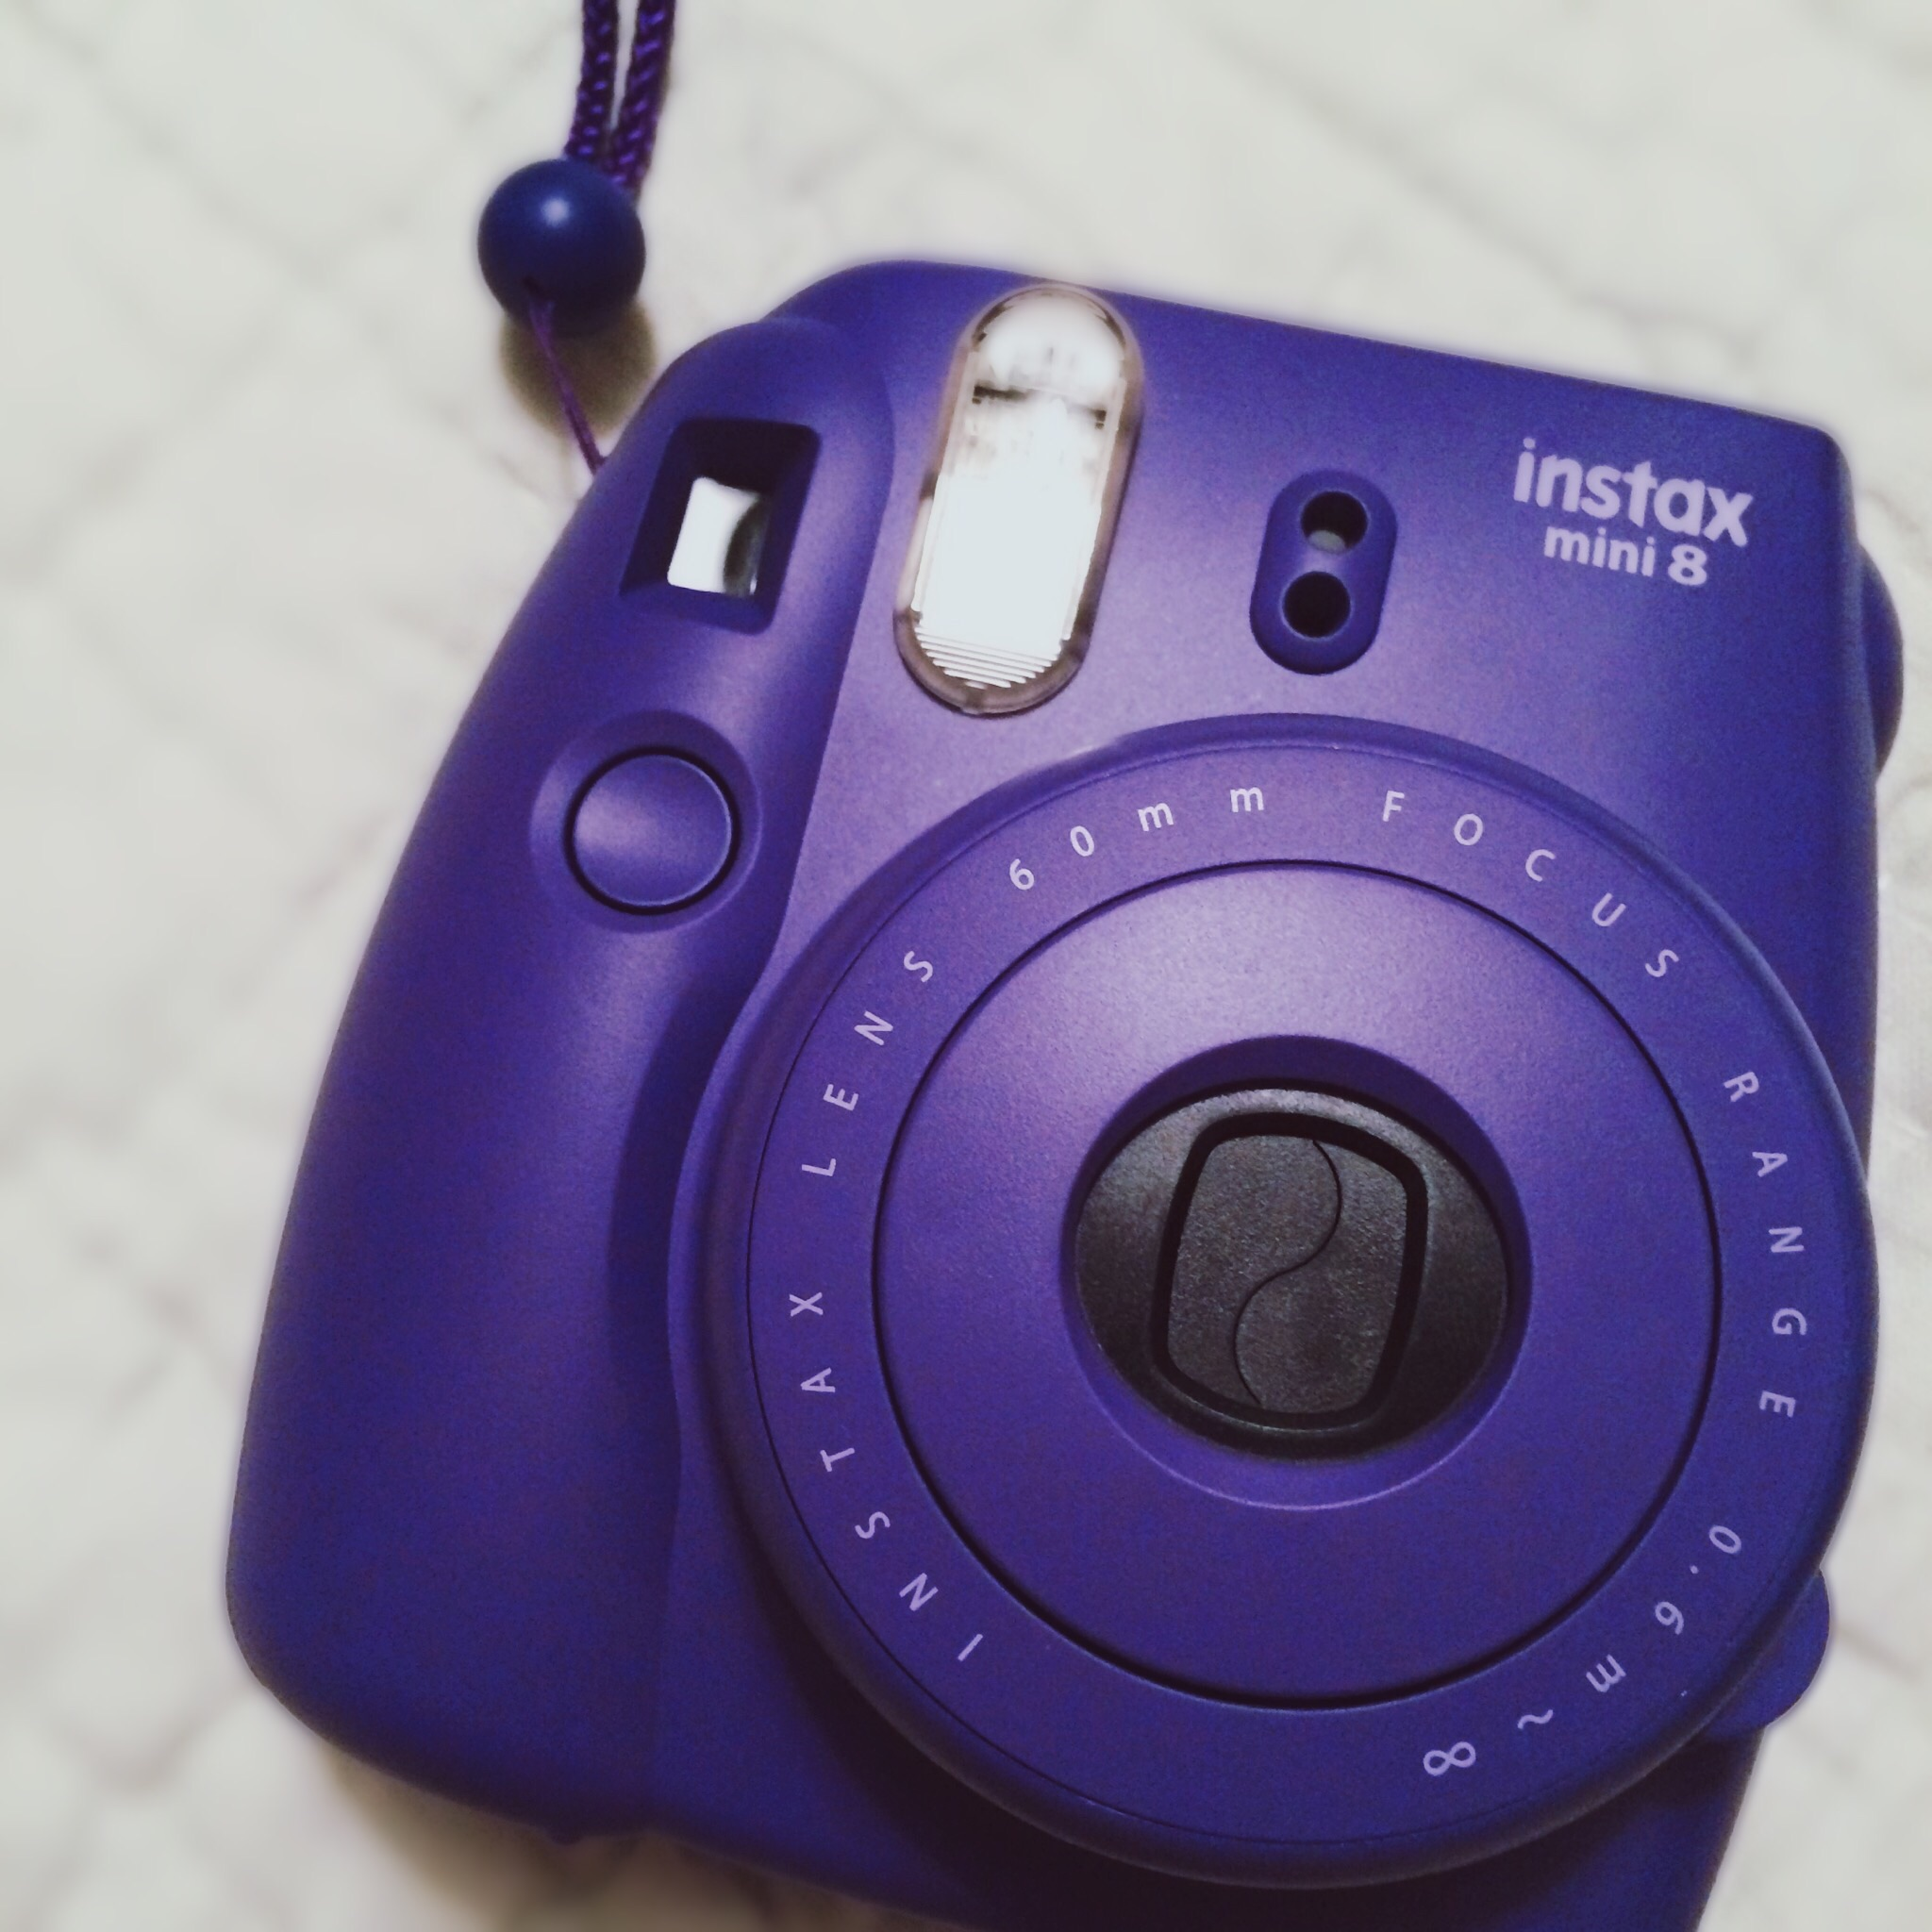 Regular retail price for the camera is $100, but I shopped around and found the best deal at Best Buy. You can find it  here  for $69.99 in all of the available colors.